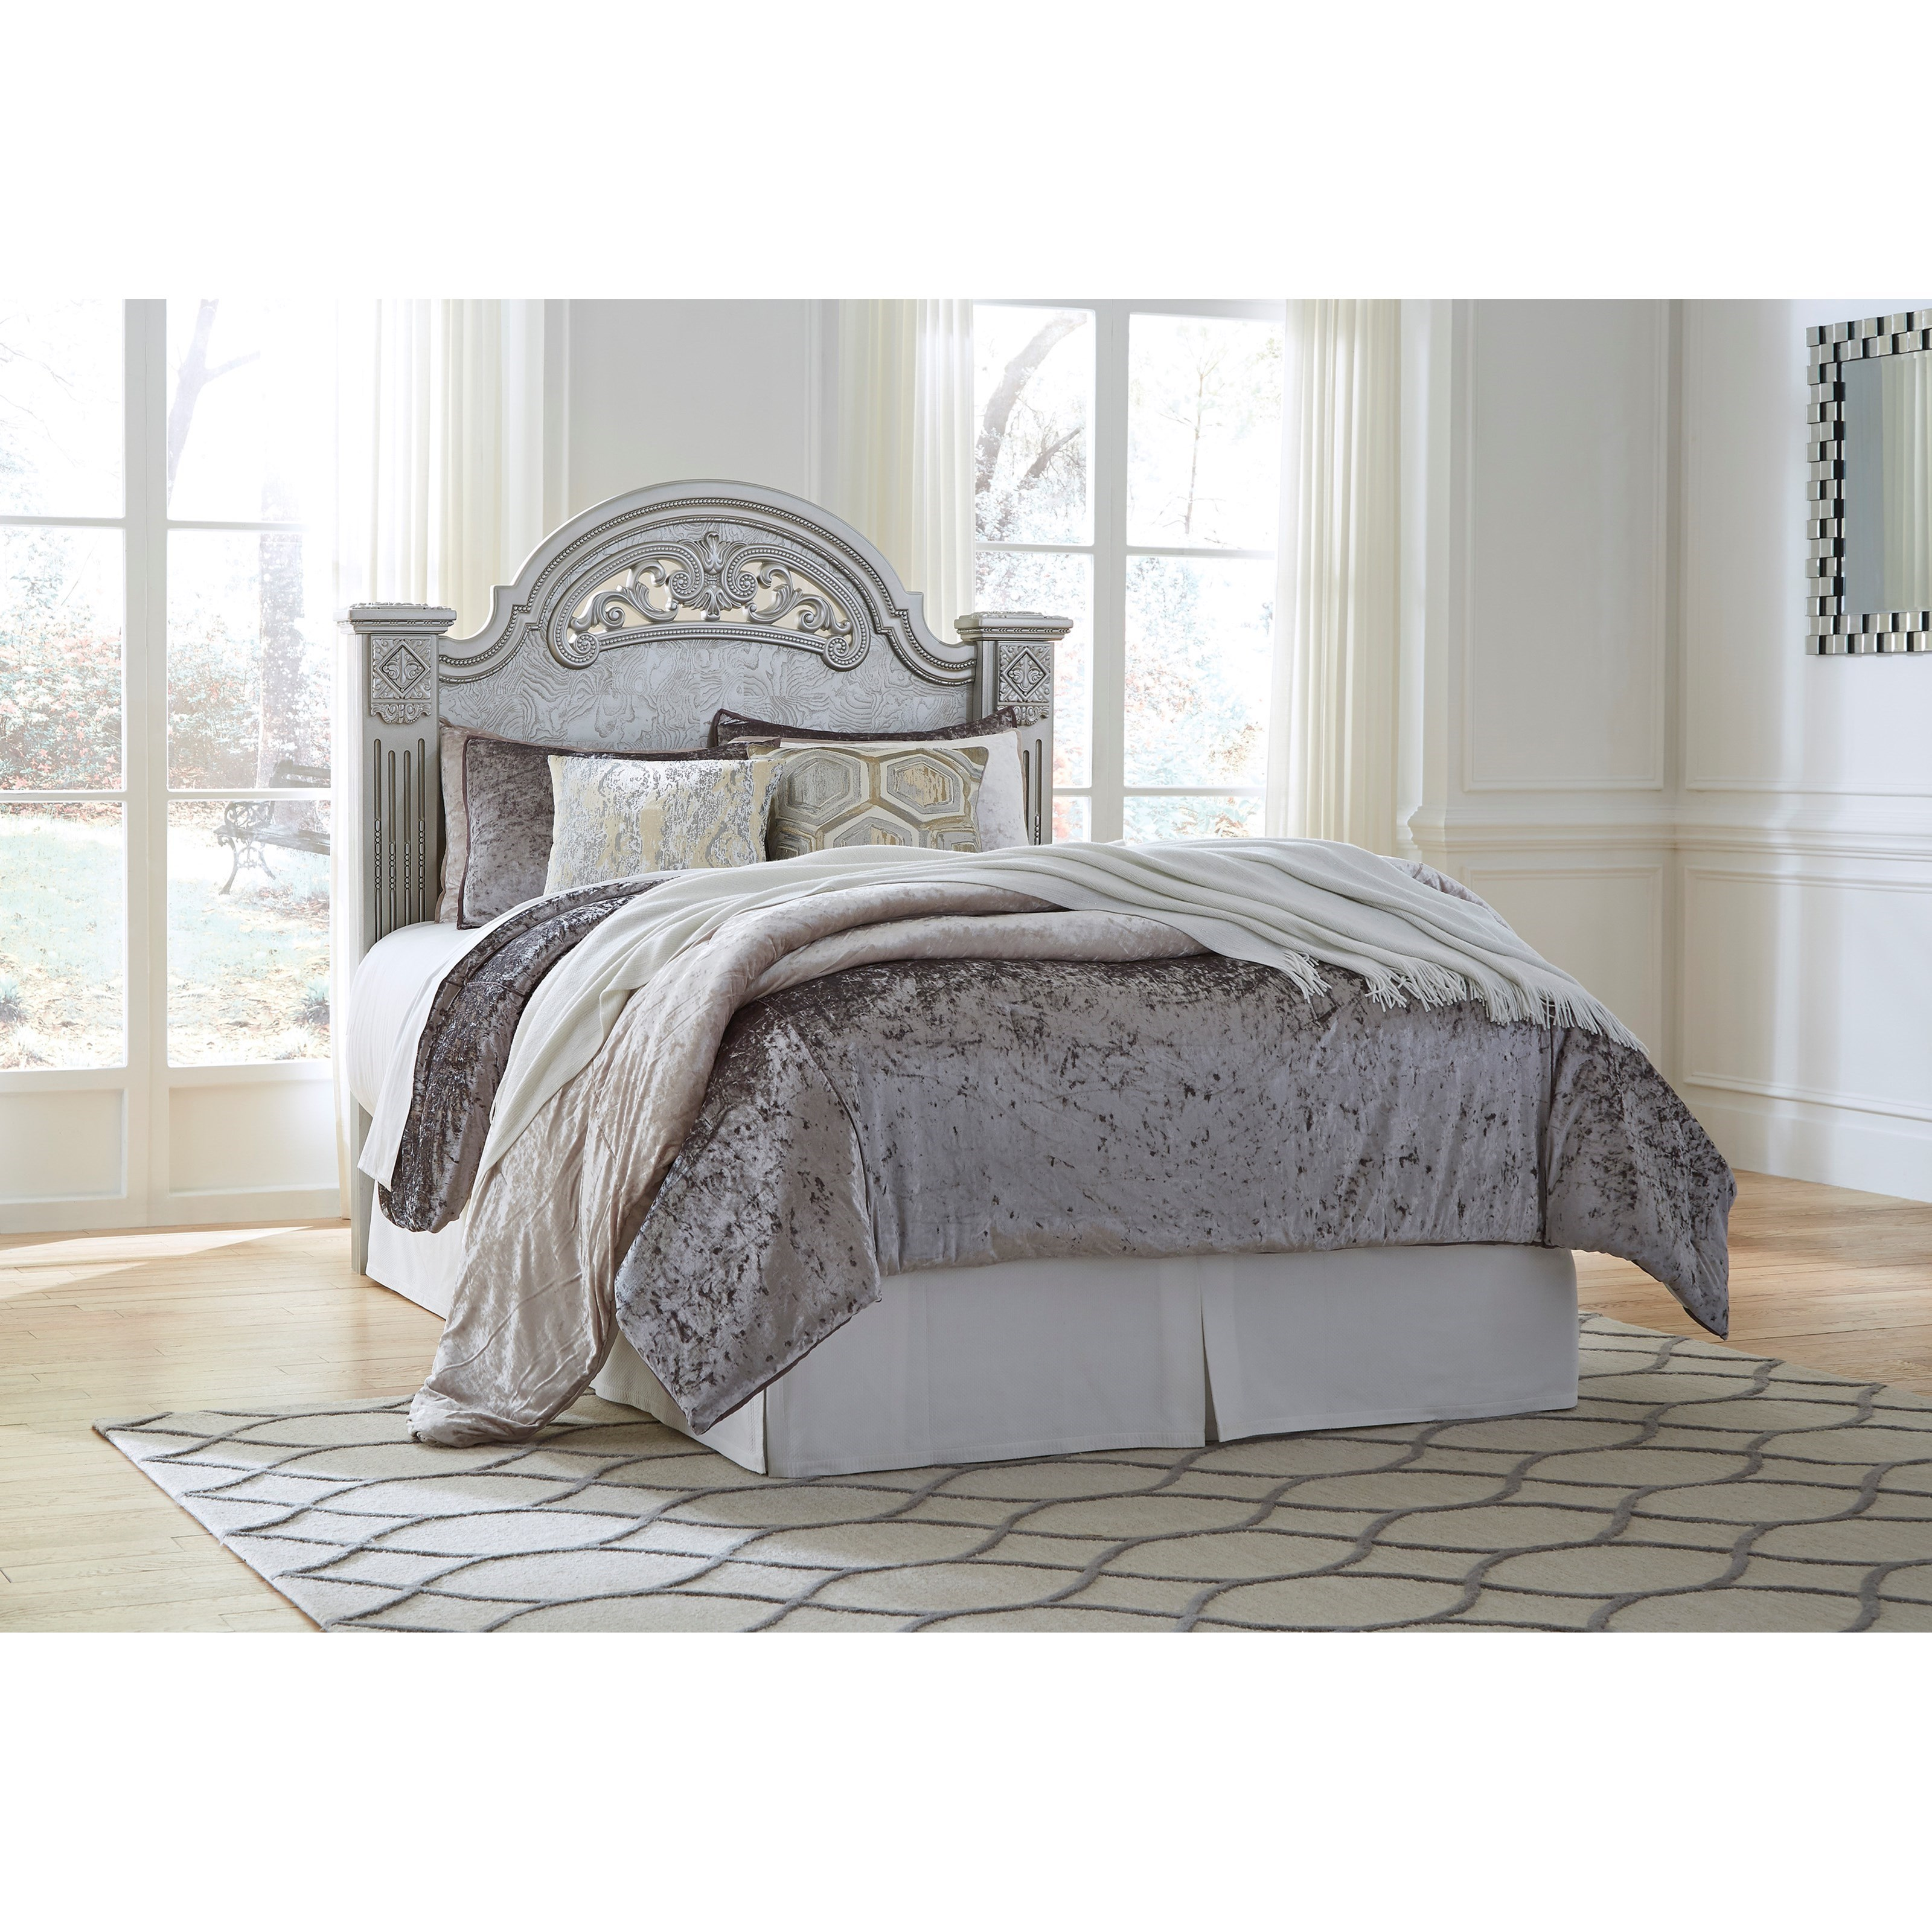 Signature Design by Ashley Zolena Queen Poster Headboard - Item Number: B357-67